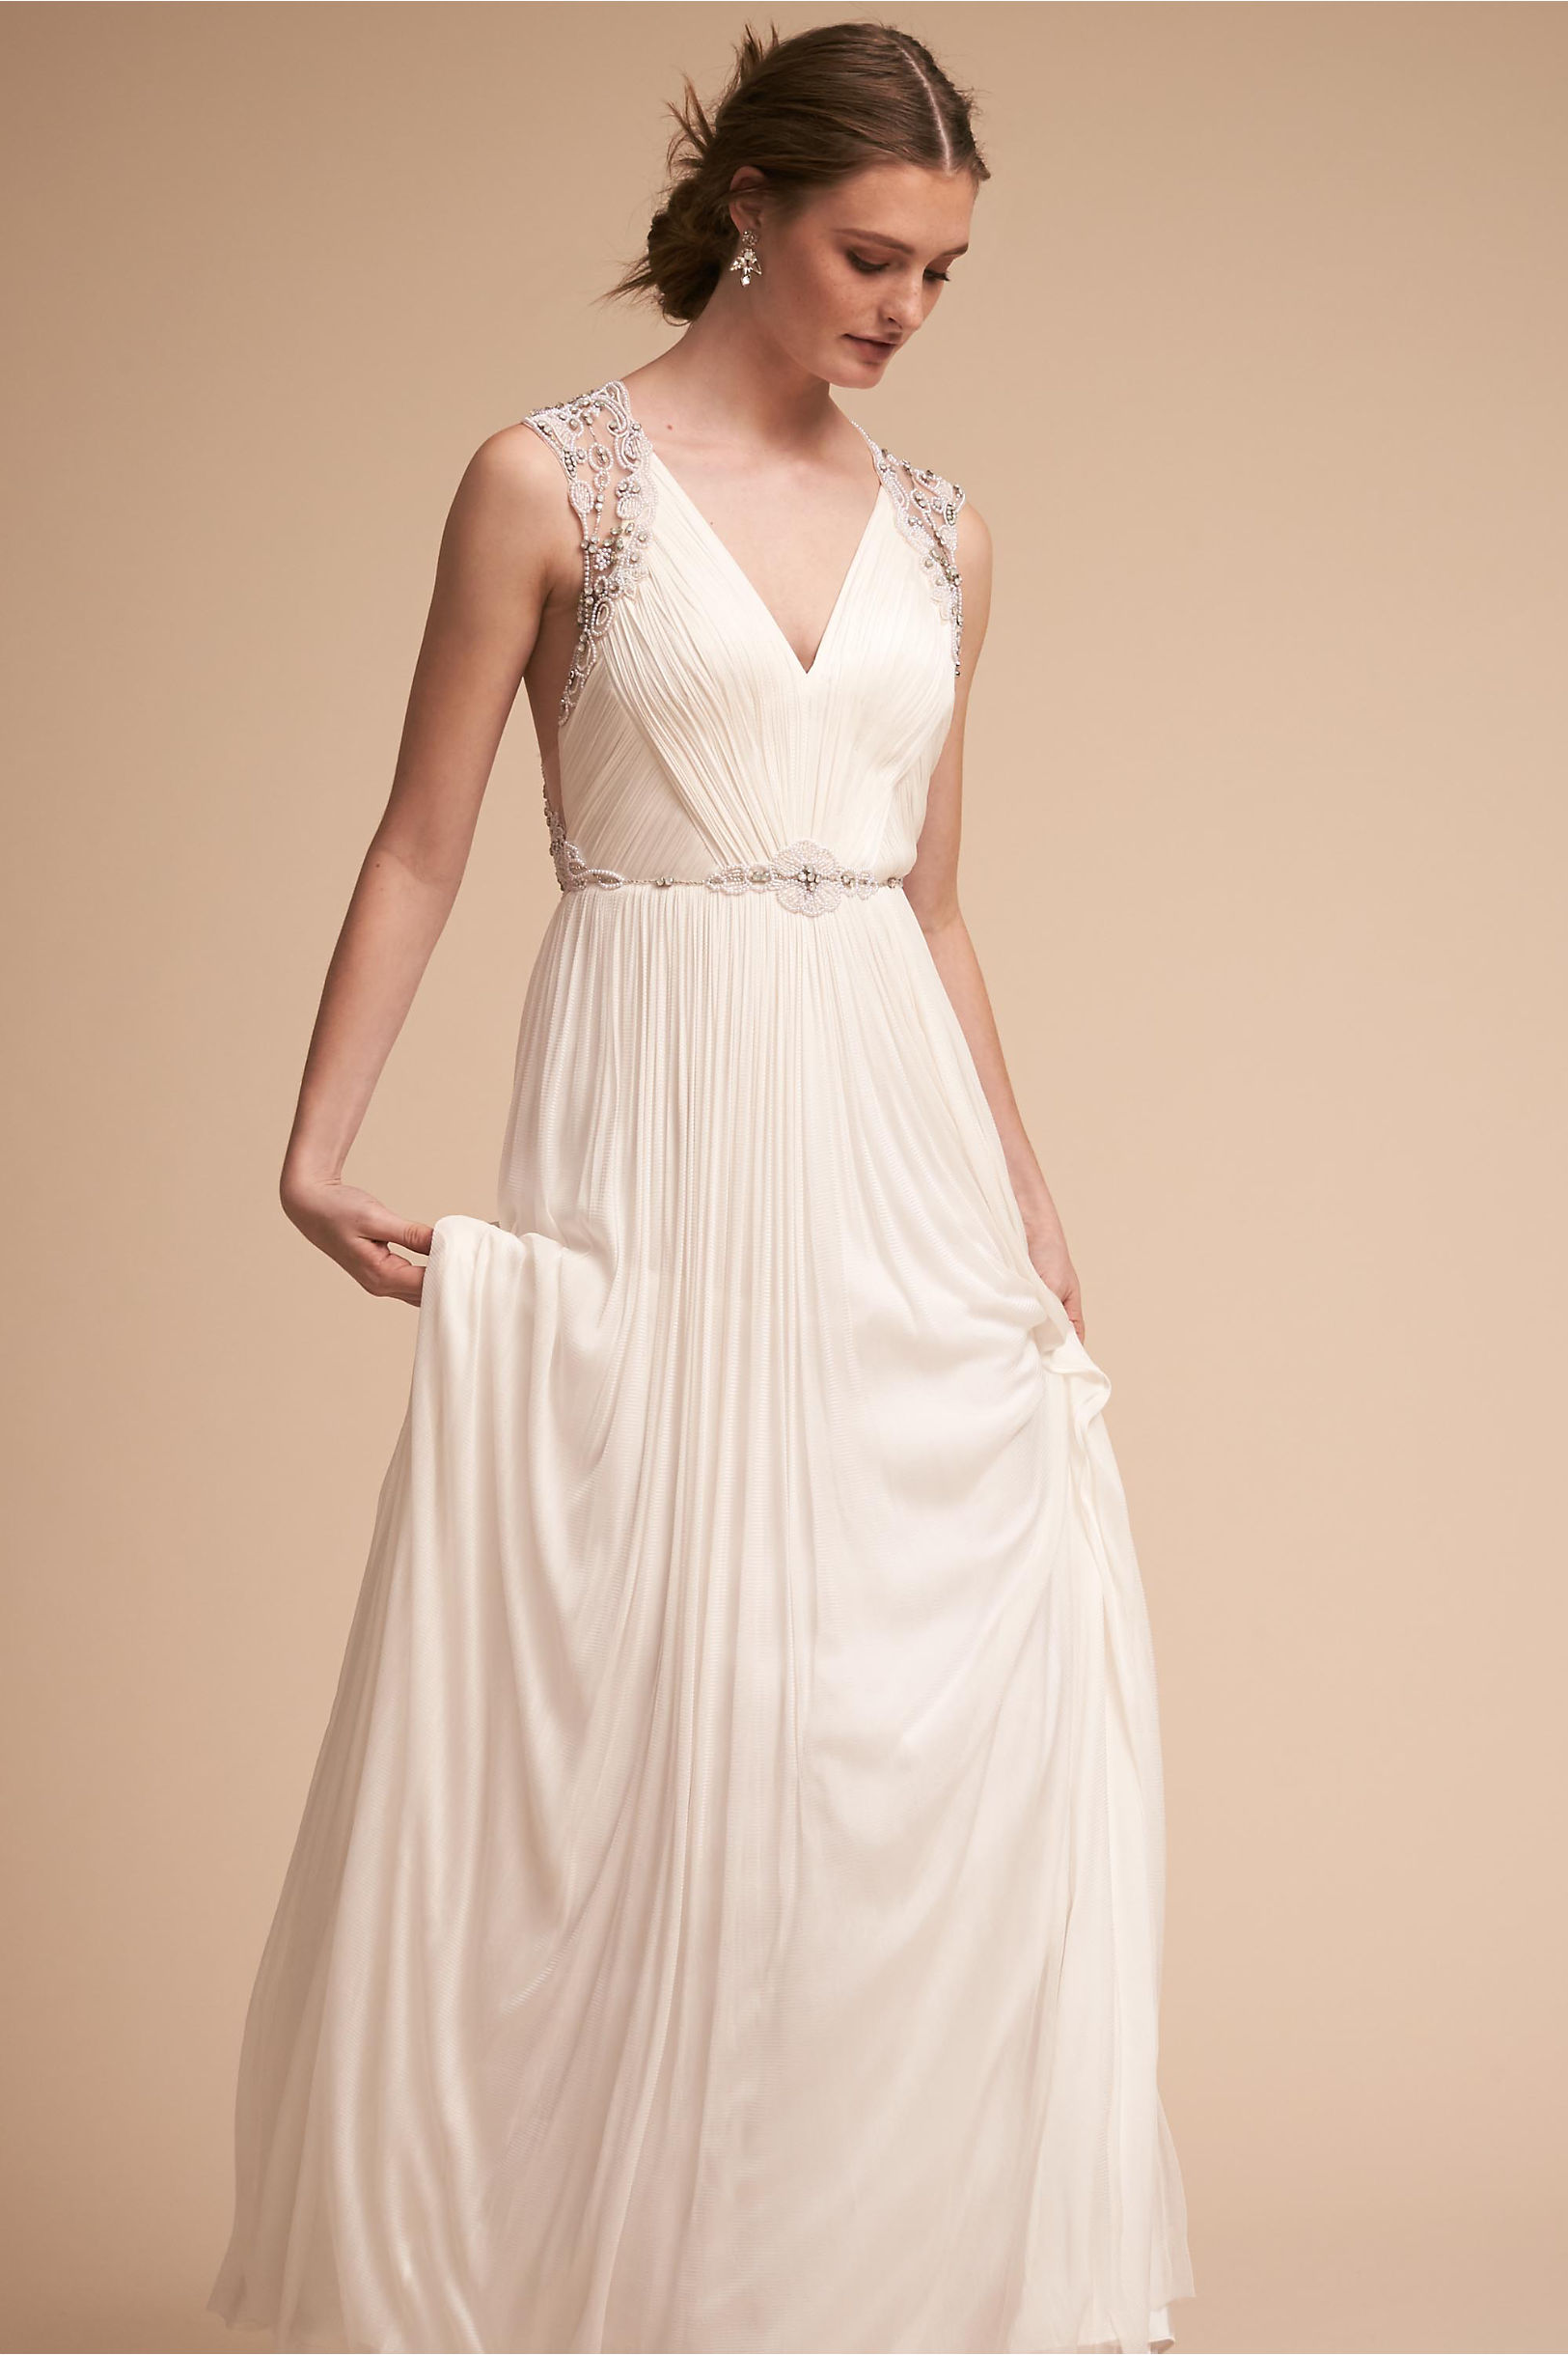 Friday wedding dress ruched bodice with cross back and flowing skirt catherine deane bhldn spring 2018